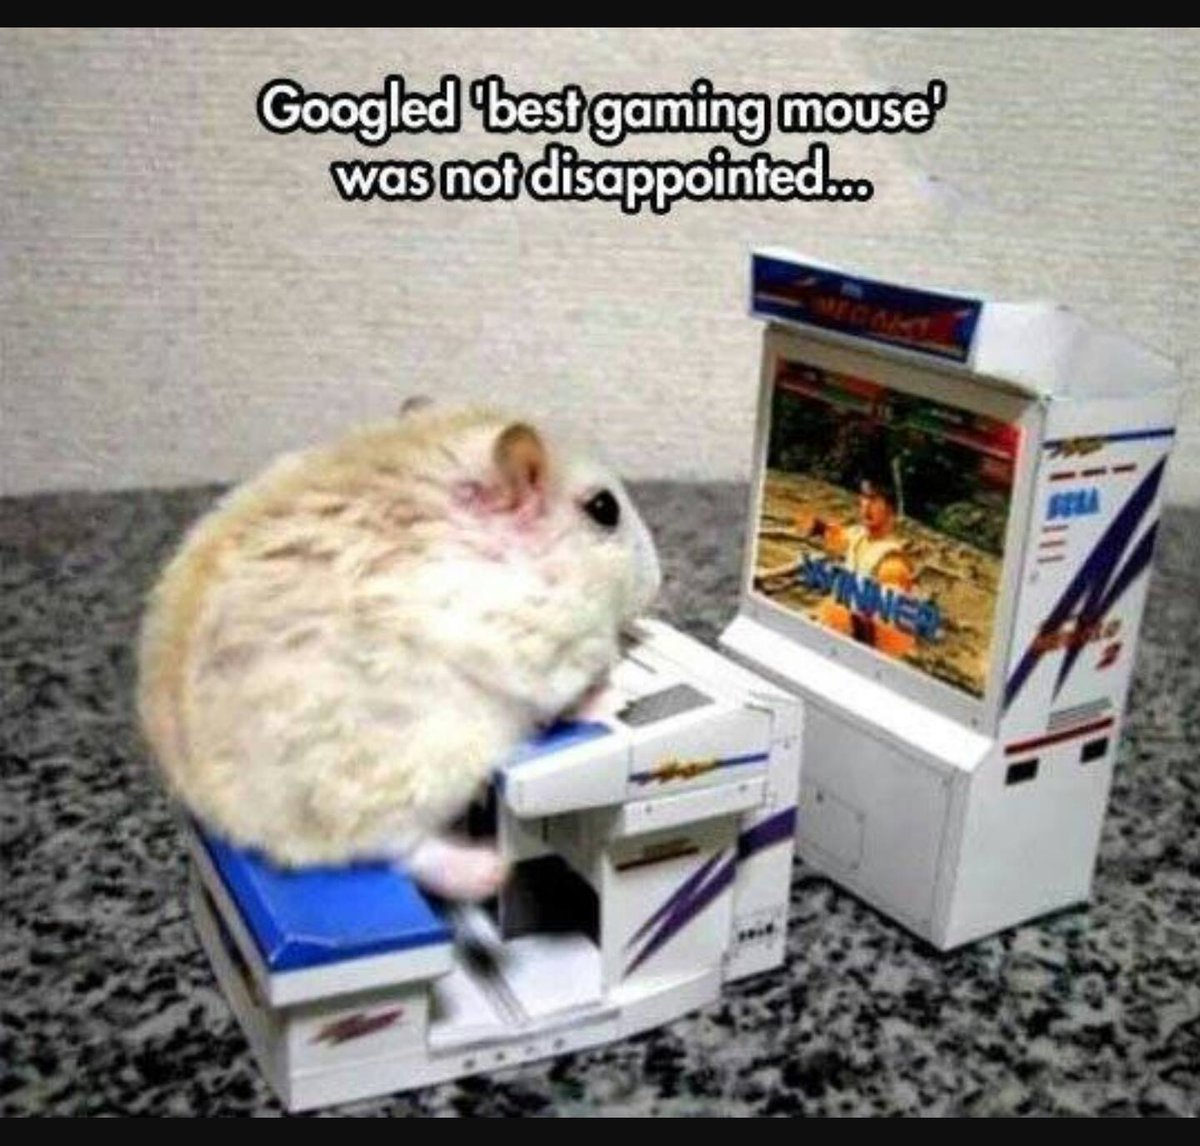 Googled 'best gaming mouse'. Was not disappointed... ���� (and yeah, I know it's a hamster - still not disappointed) https://t.co/jHqaLcKZ4A